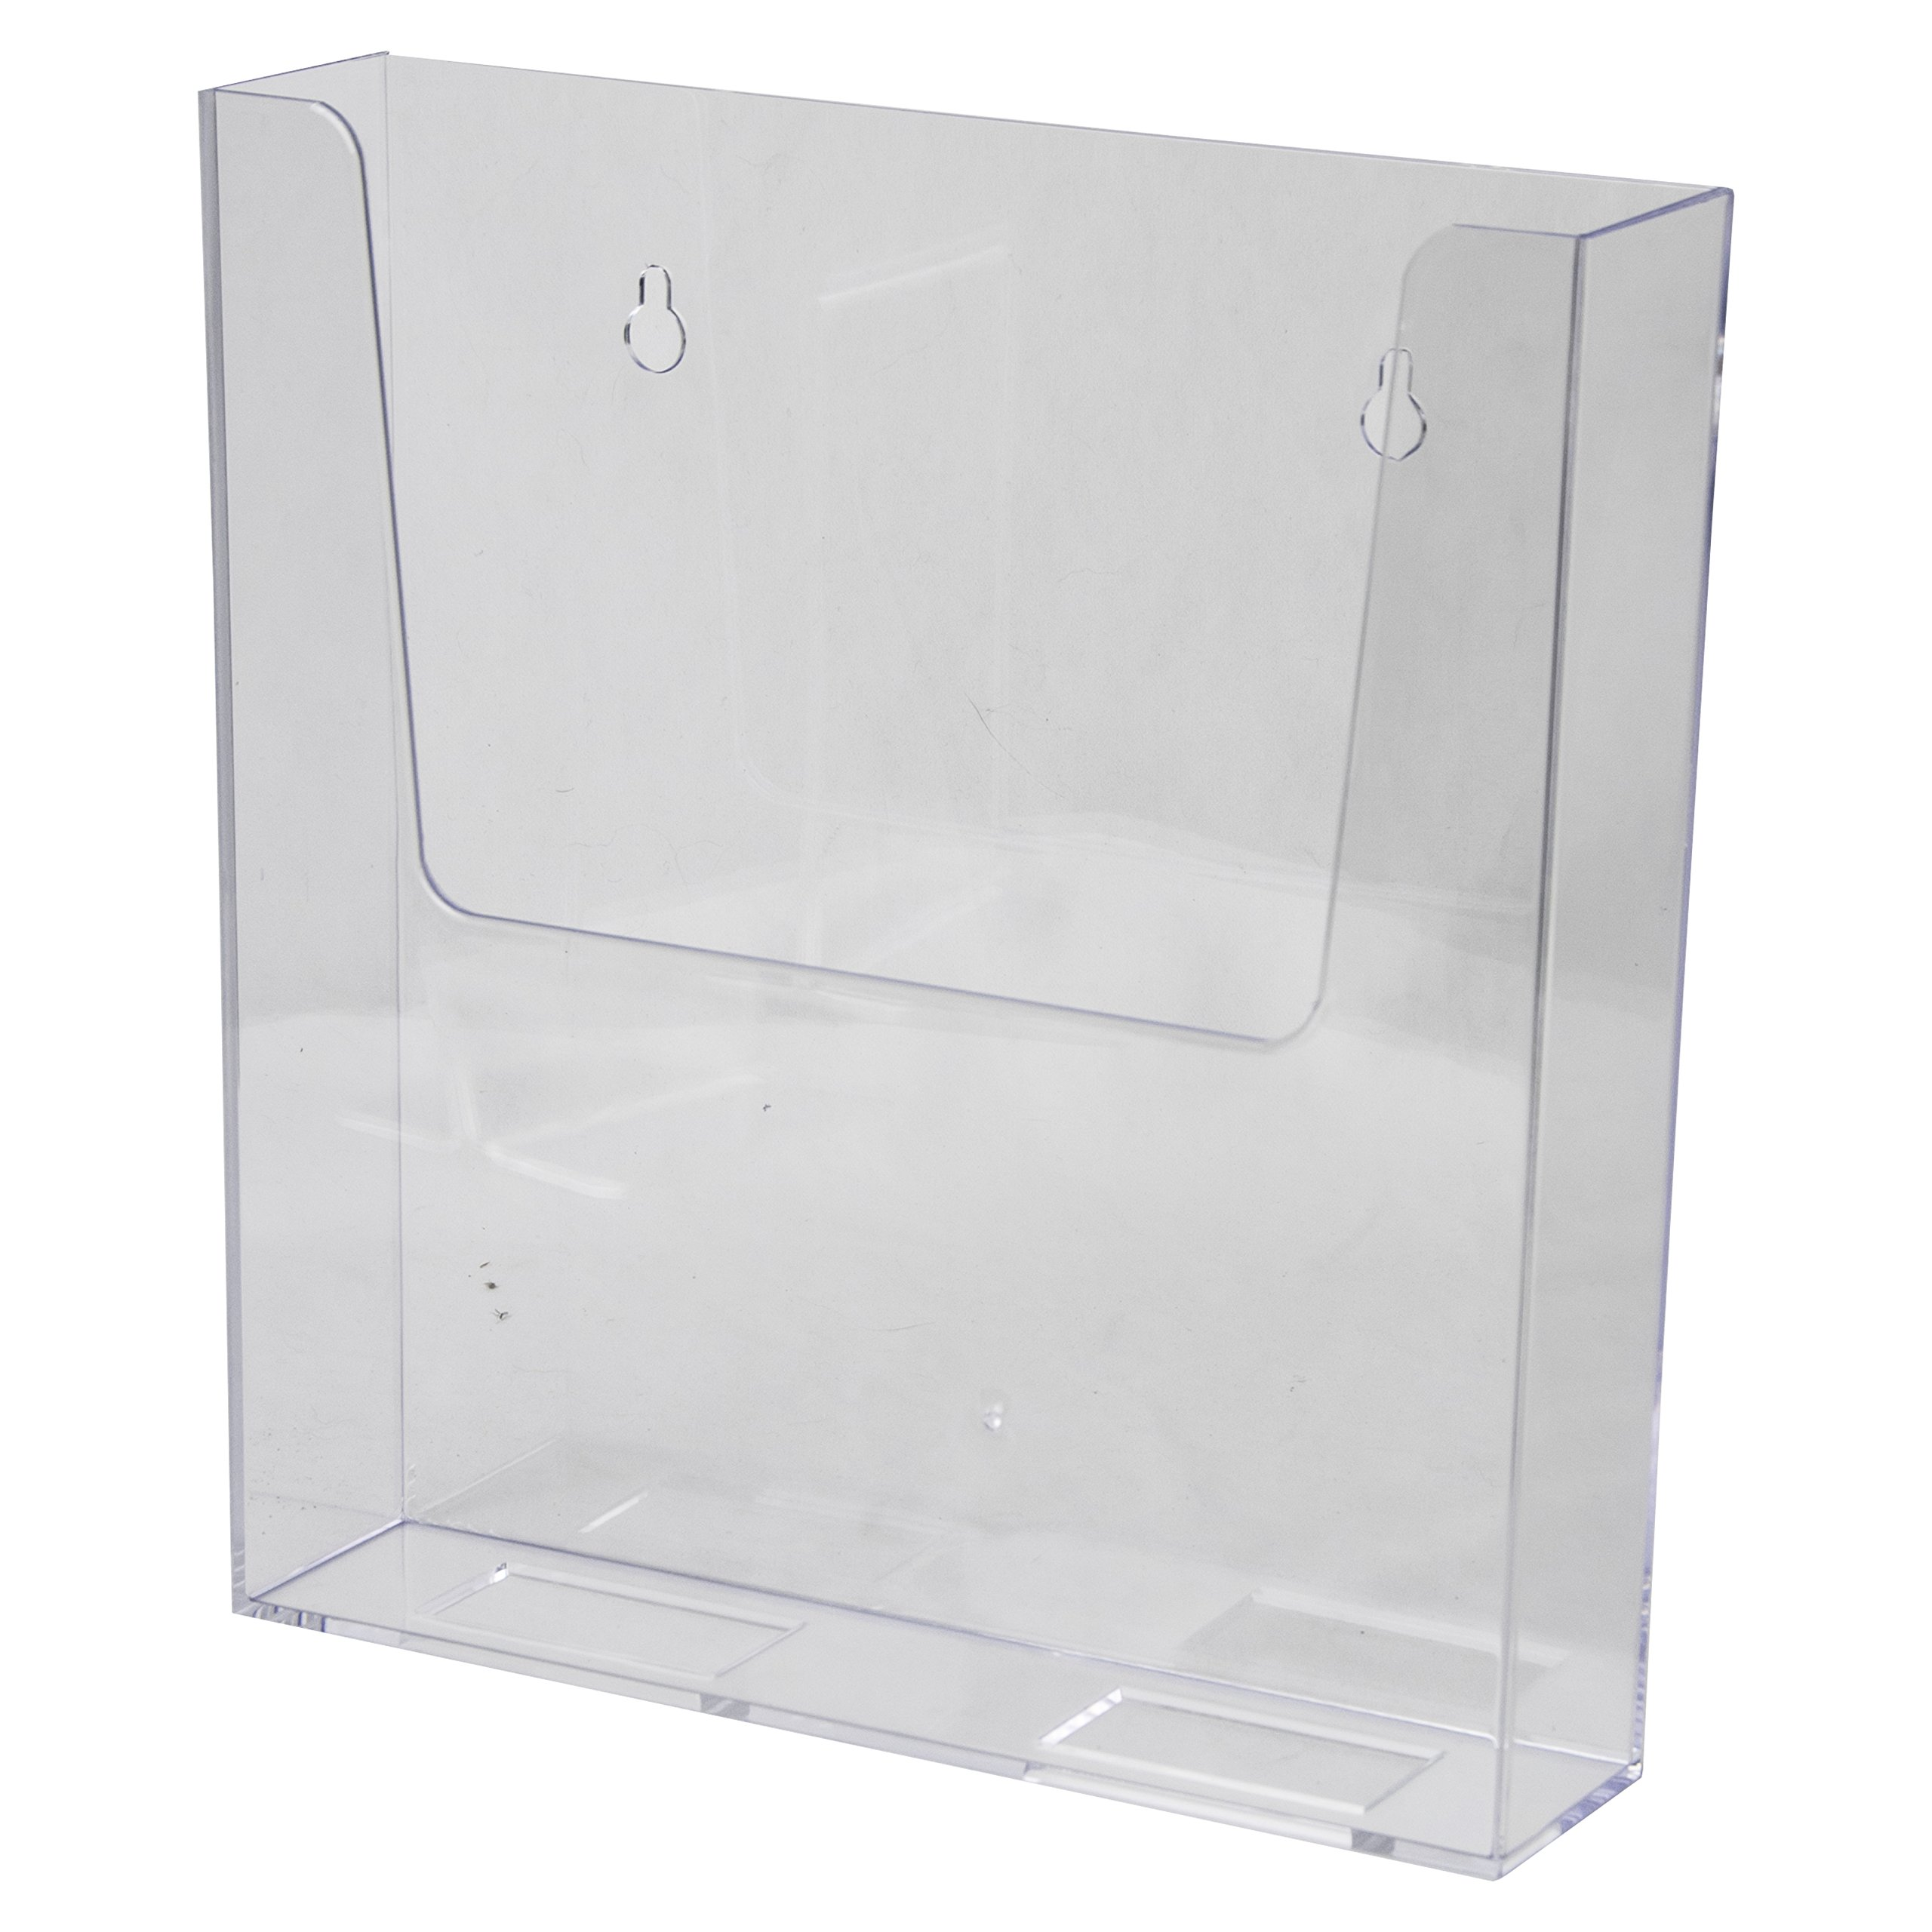 Clear-Ad - Acrylic Wall Mount Brochure Holder 8.5x11 - Plastic Hanging Flyer Holders - Adhesive or Wall Mounted File and Magazine Rack - Single Pocket Literature Display Box - LHW-M161 (Pack of 16)